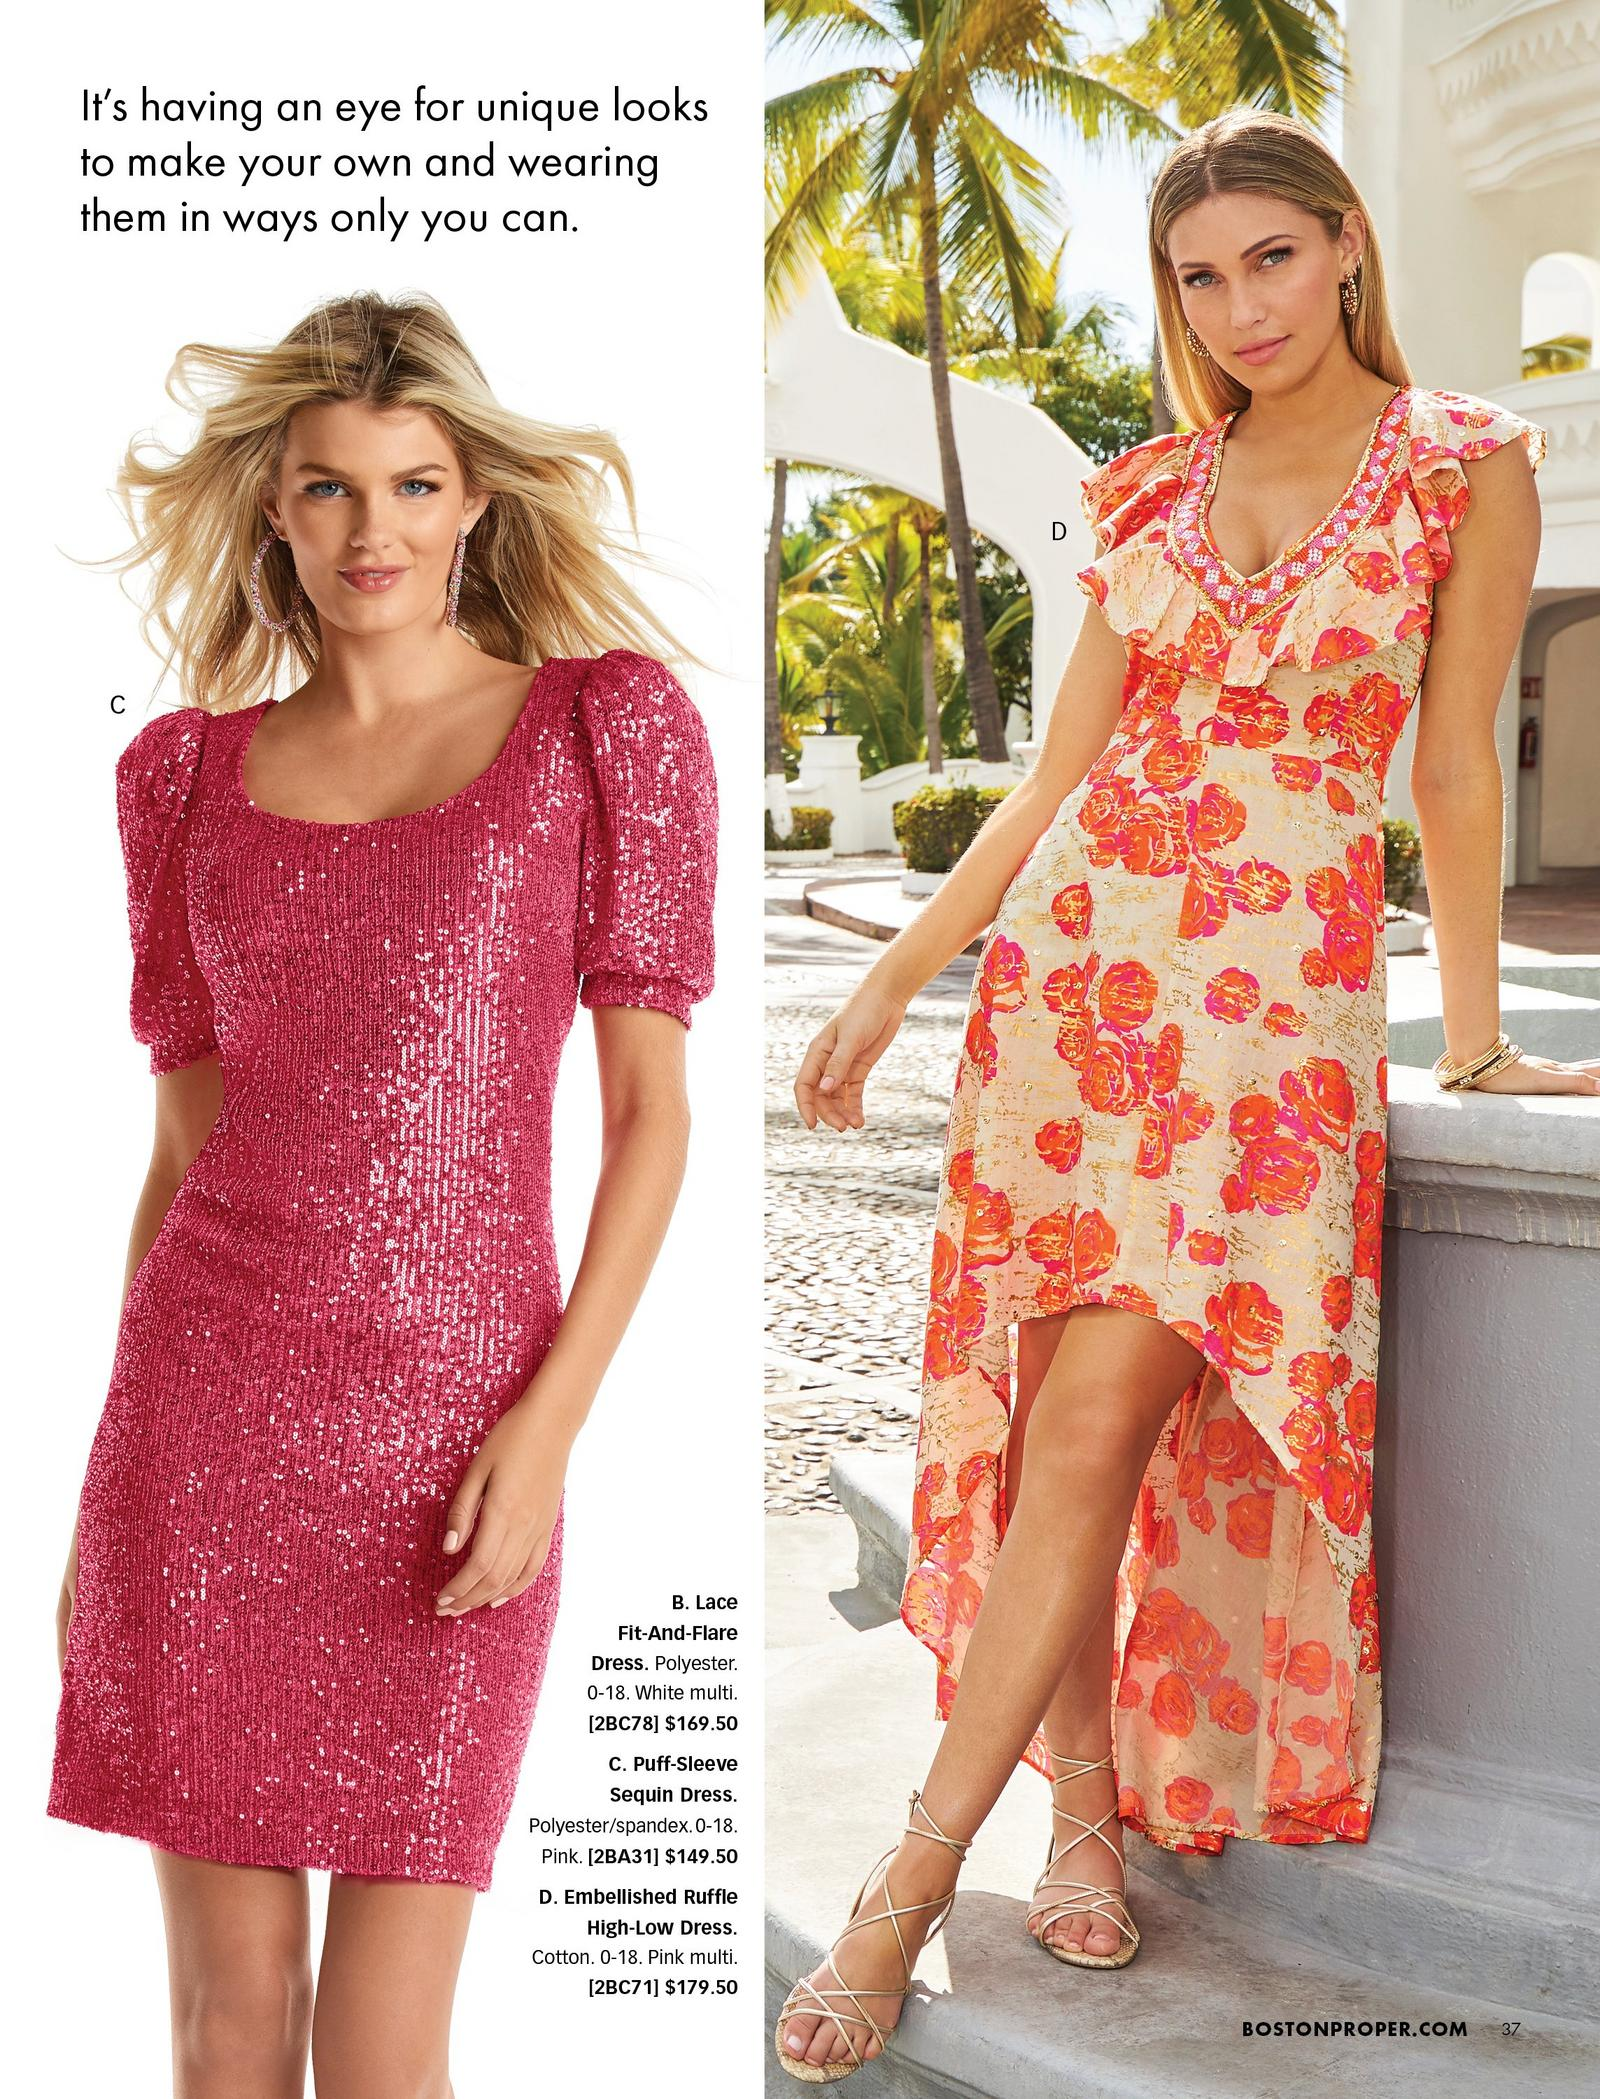 left model wearing a pink sequin puff-sleeve dress. right model wearing an orange floral ruffle and sequin embellished high-low sleeveless maxi dress.